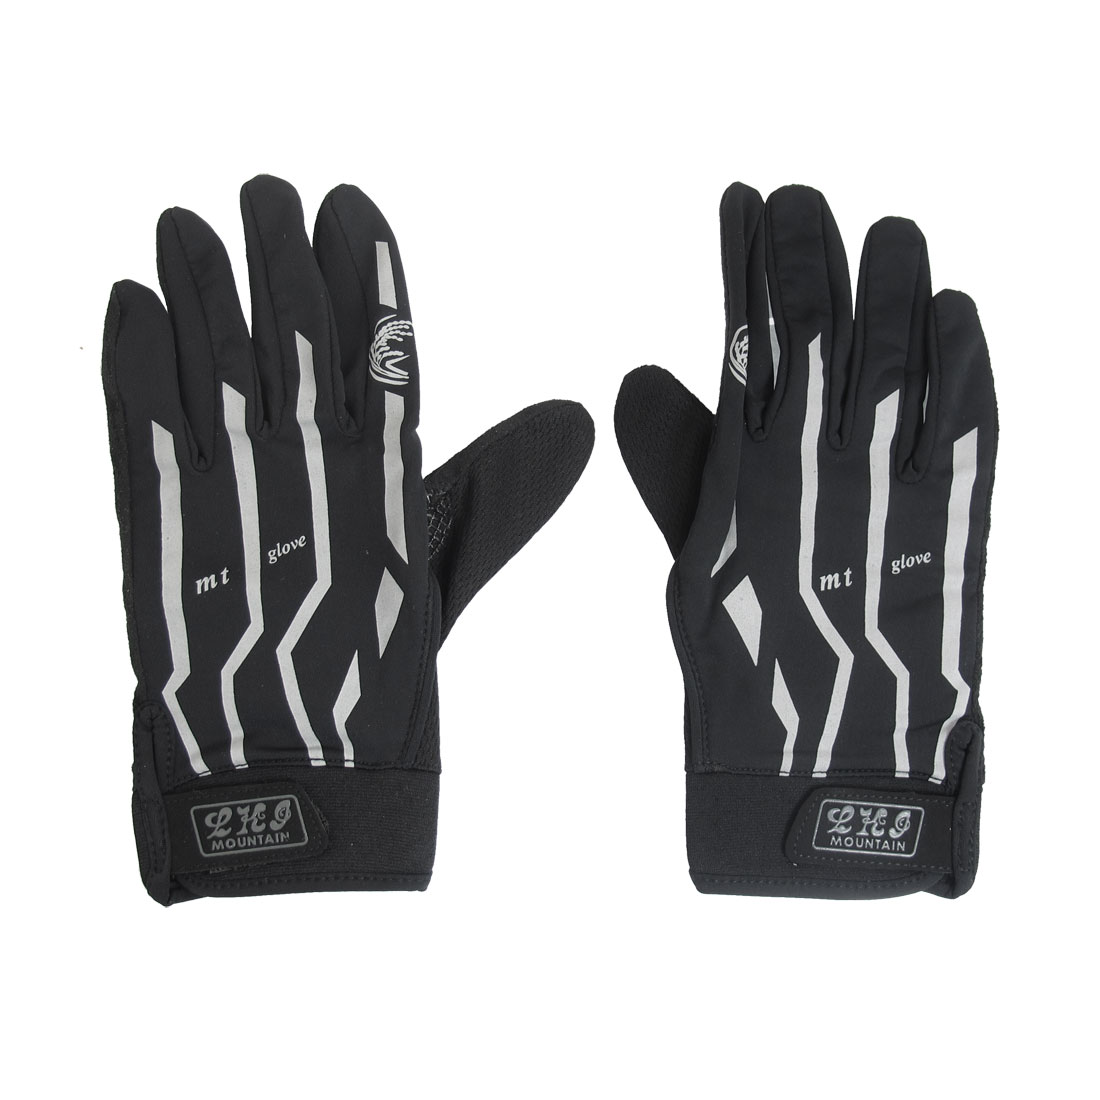 Black Antislip Palm Full Finger Outdoor Cycling Glove for Men